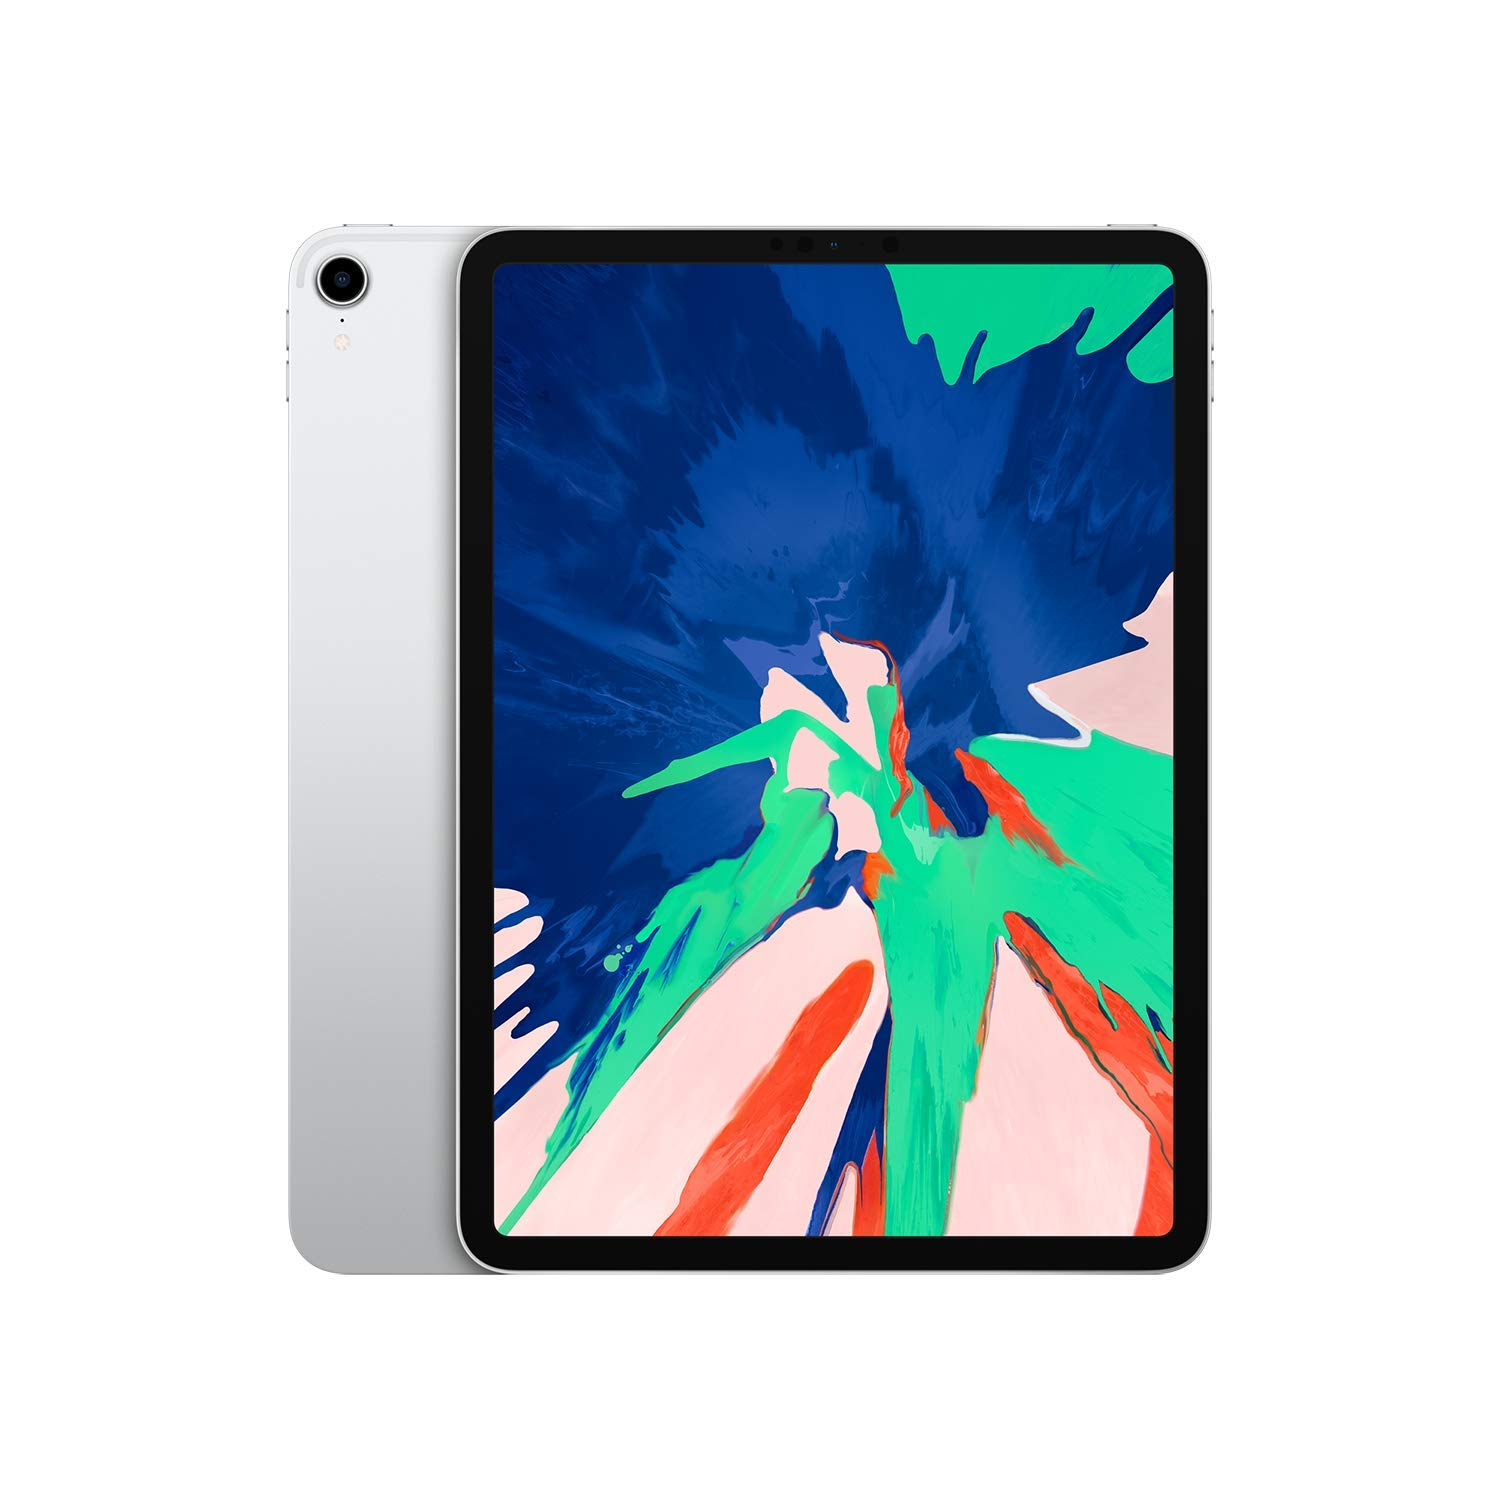 The Latest iPad has killer specs and would make the perfect Father's Day gift! (Photo via Amazon)